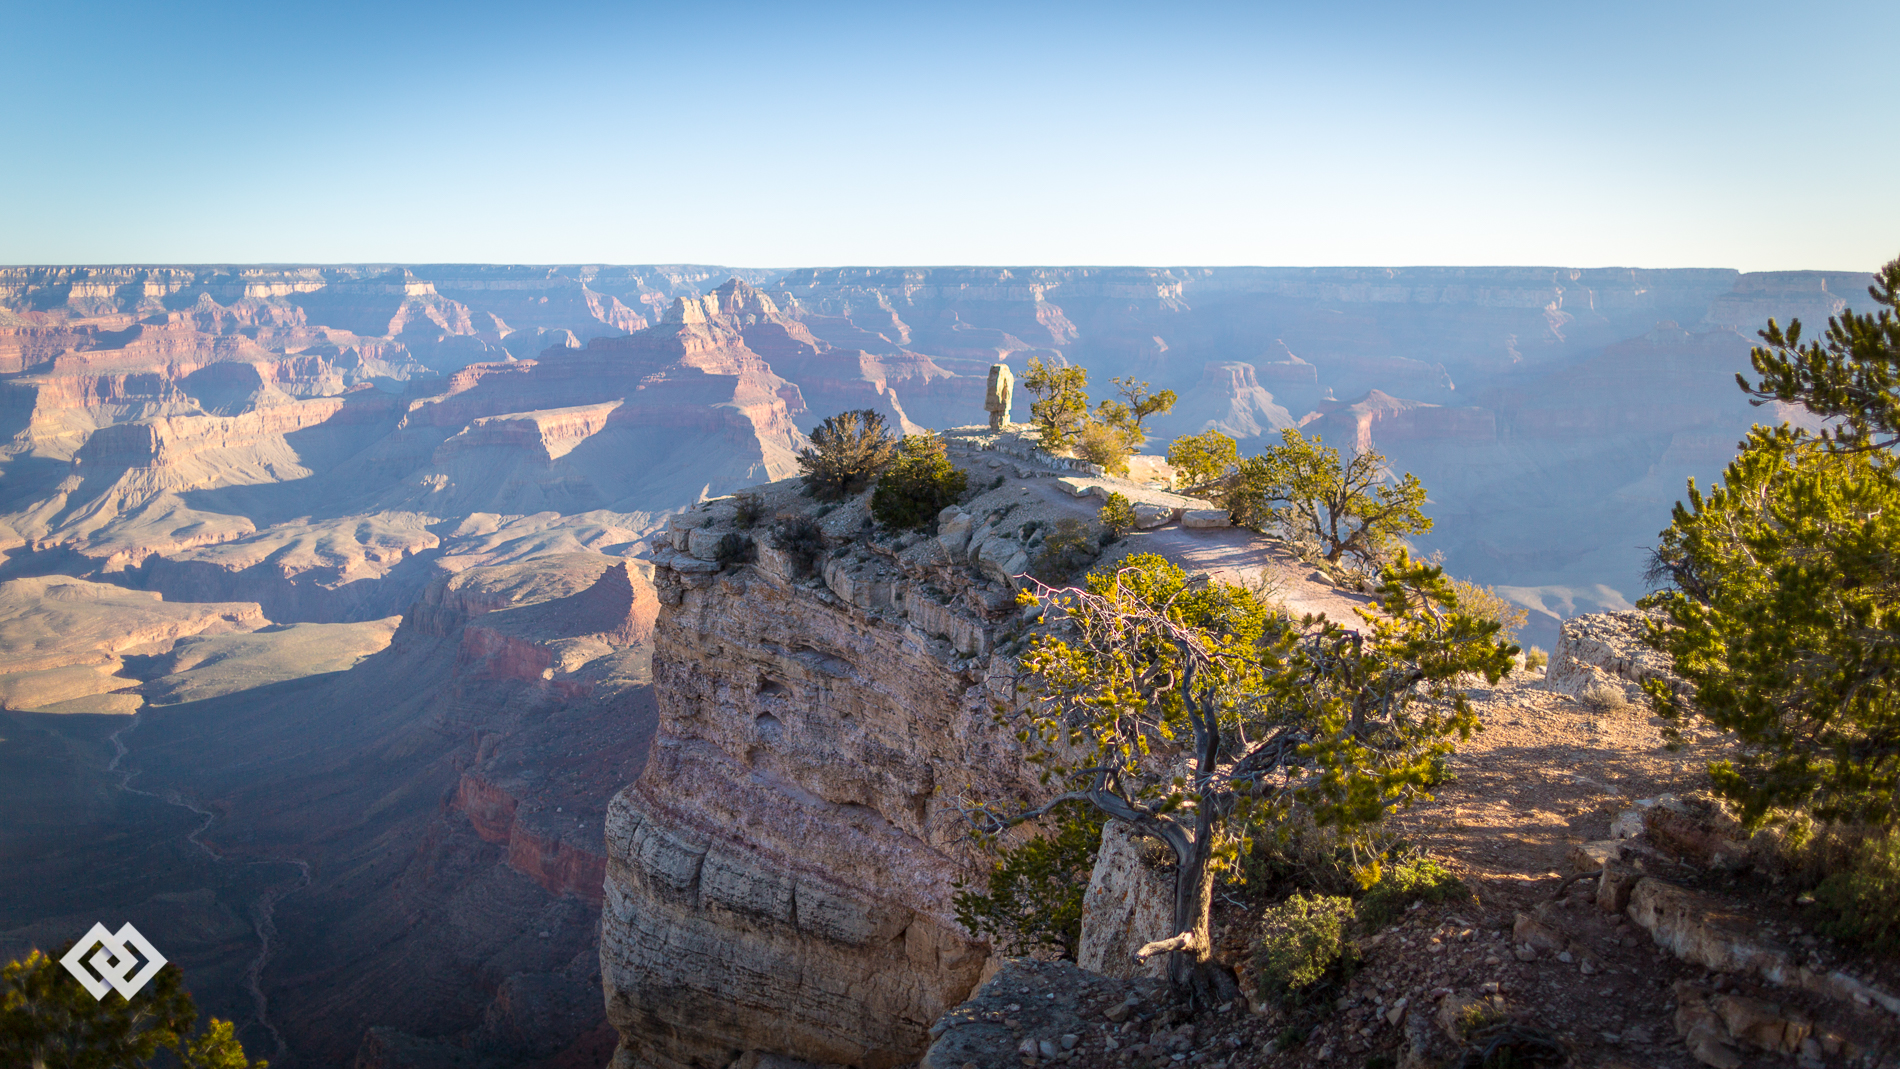 Shoshone Point, The Grand Canyon